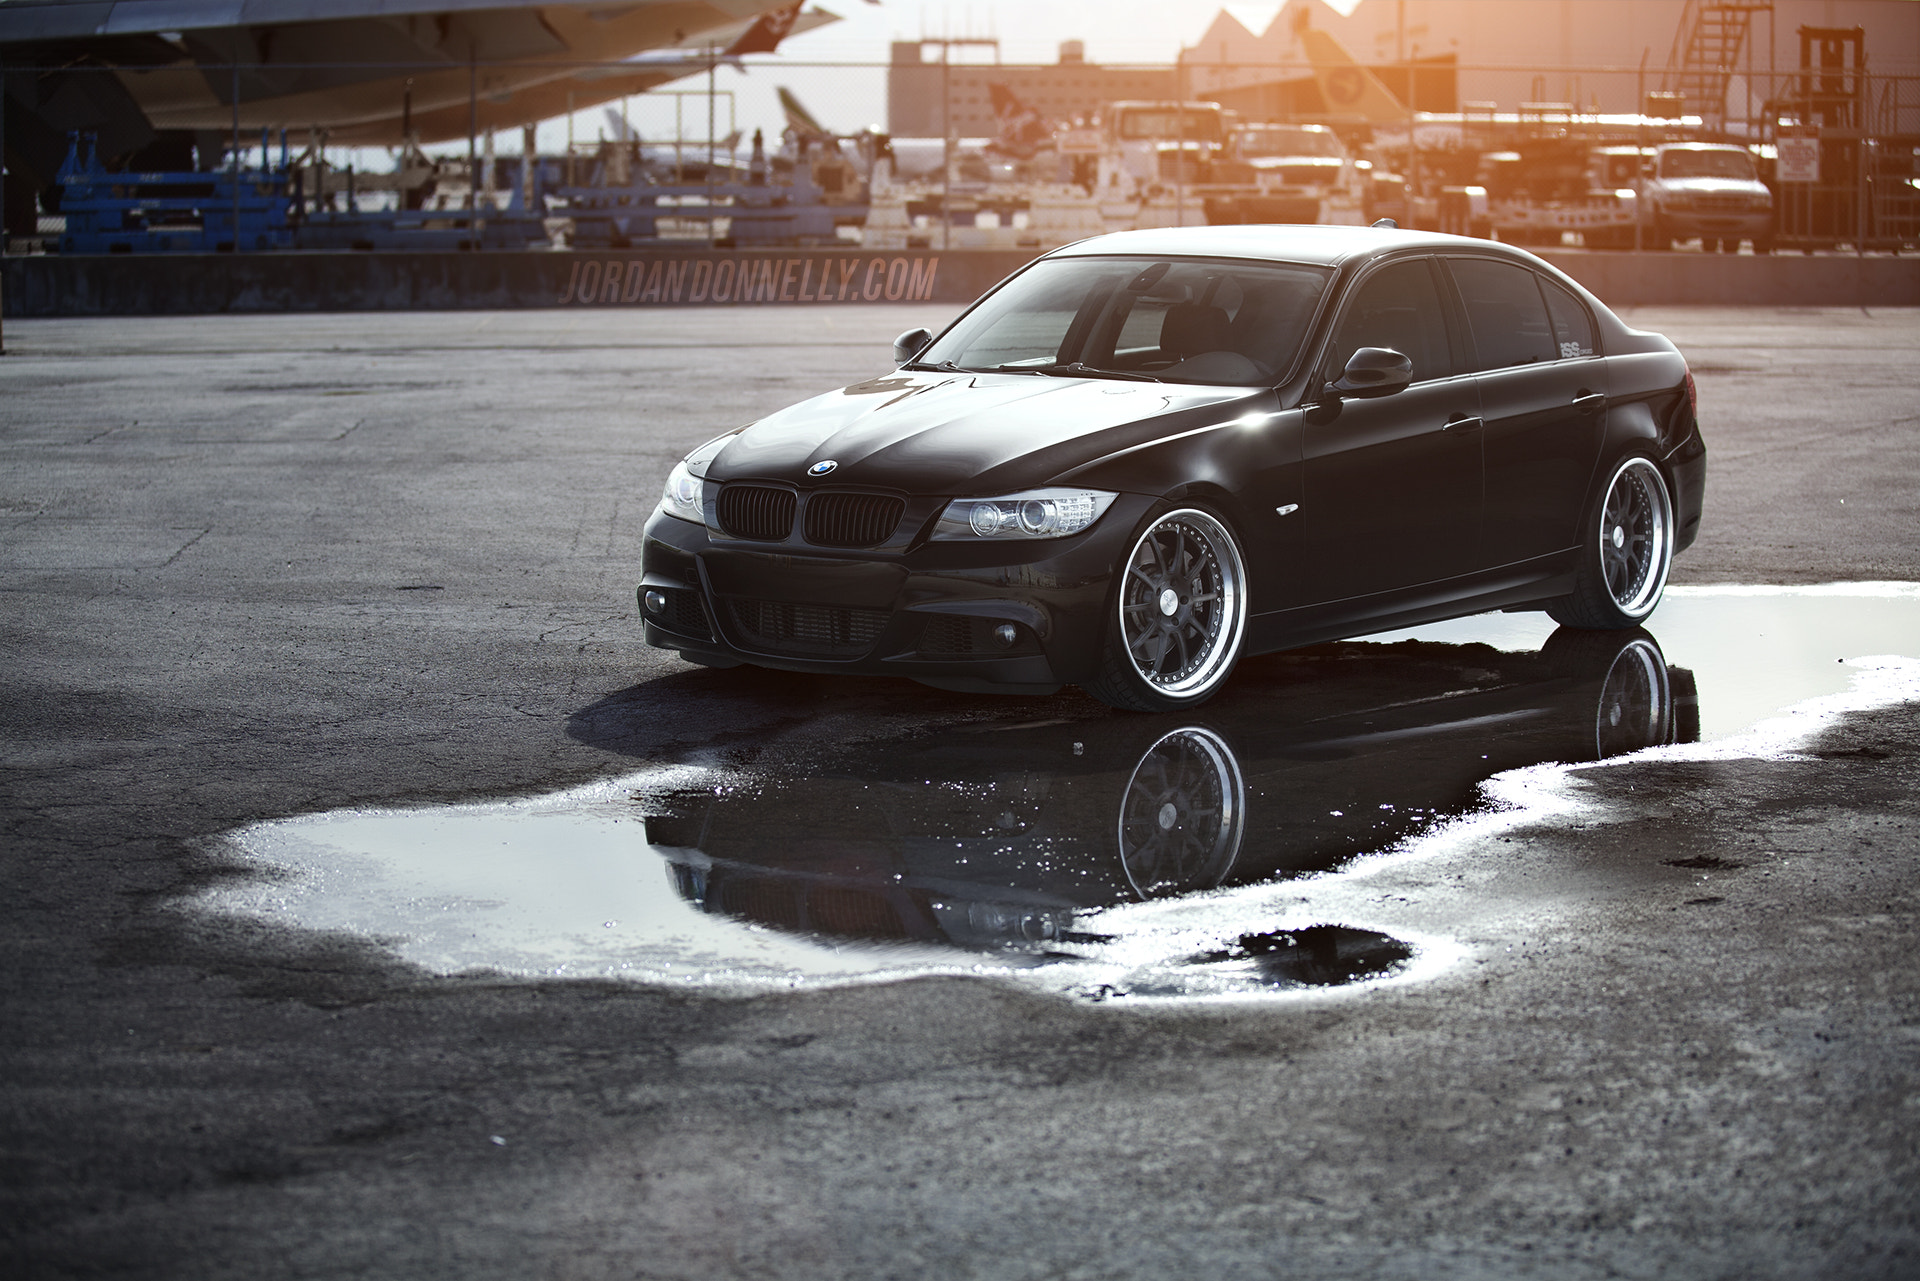 Photograph ISS Forged BMW 335 by Jordan Donnelly on 500px